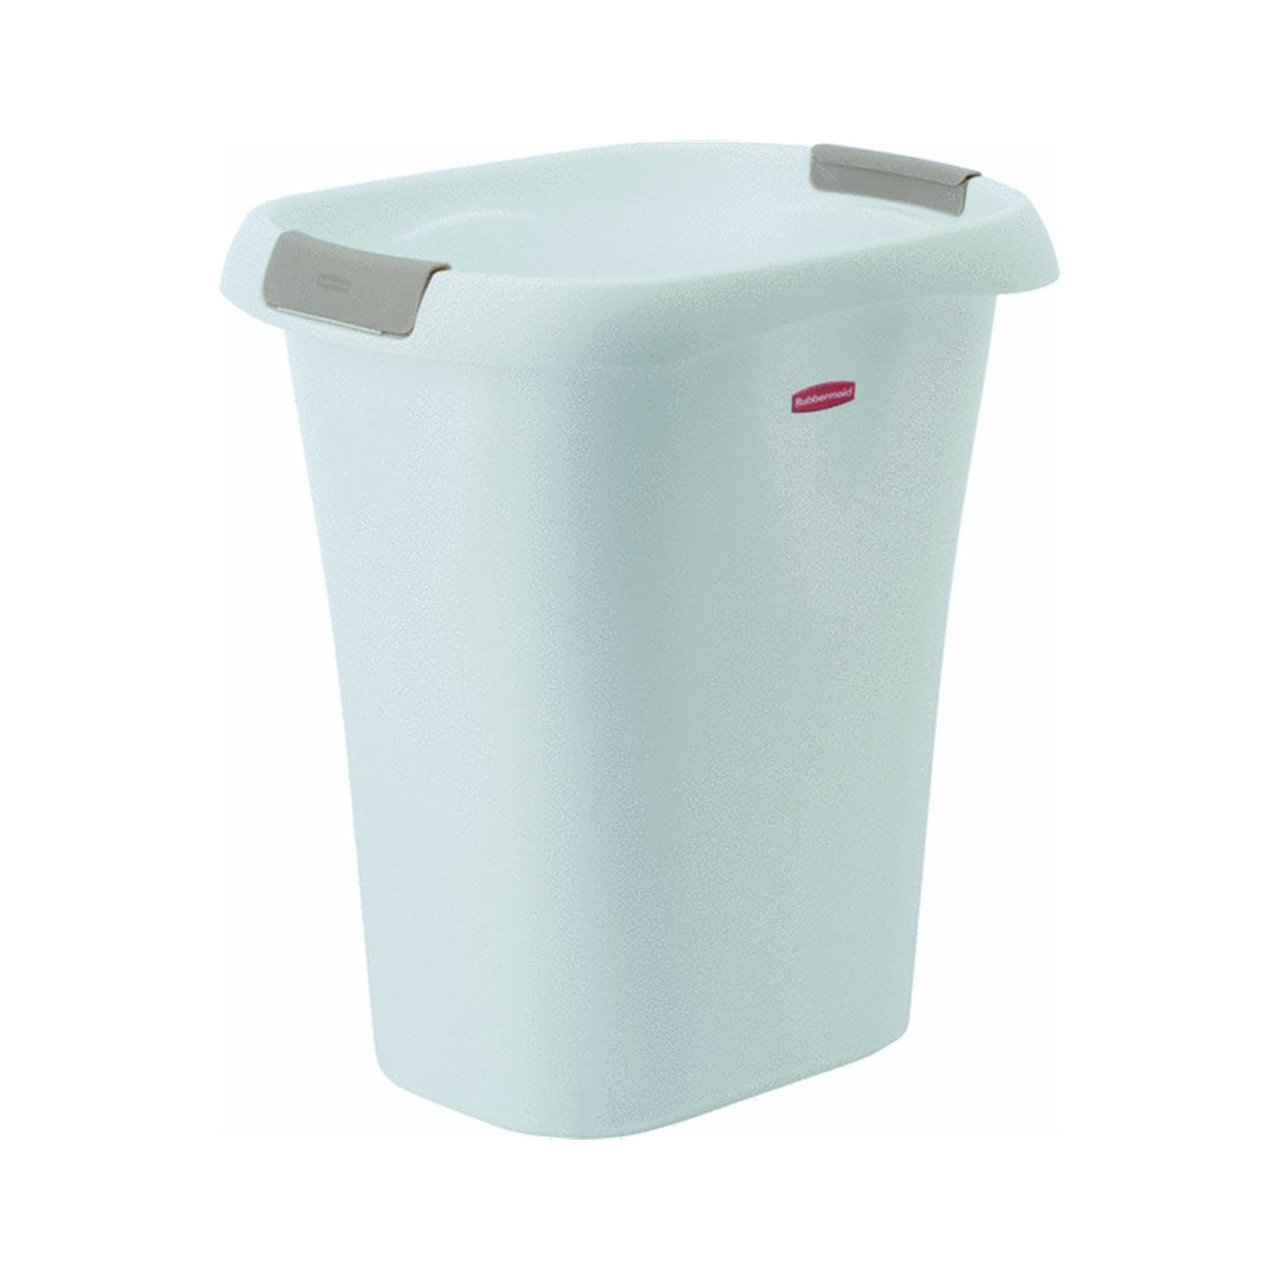 Amazon.com: Rubbermaid Open Wastebasket, 21-Quart, White: Home & Kitchen